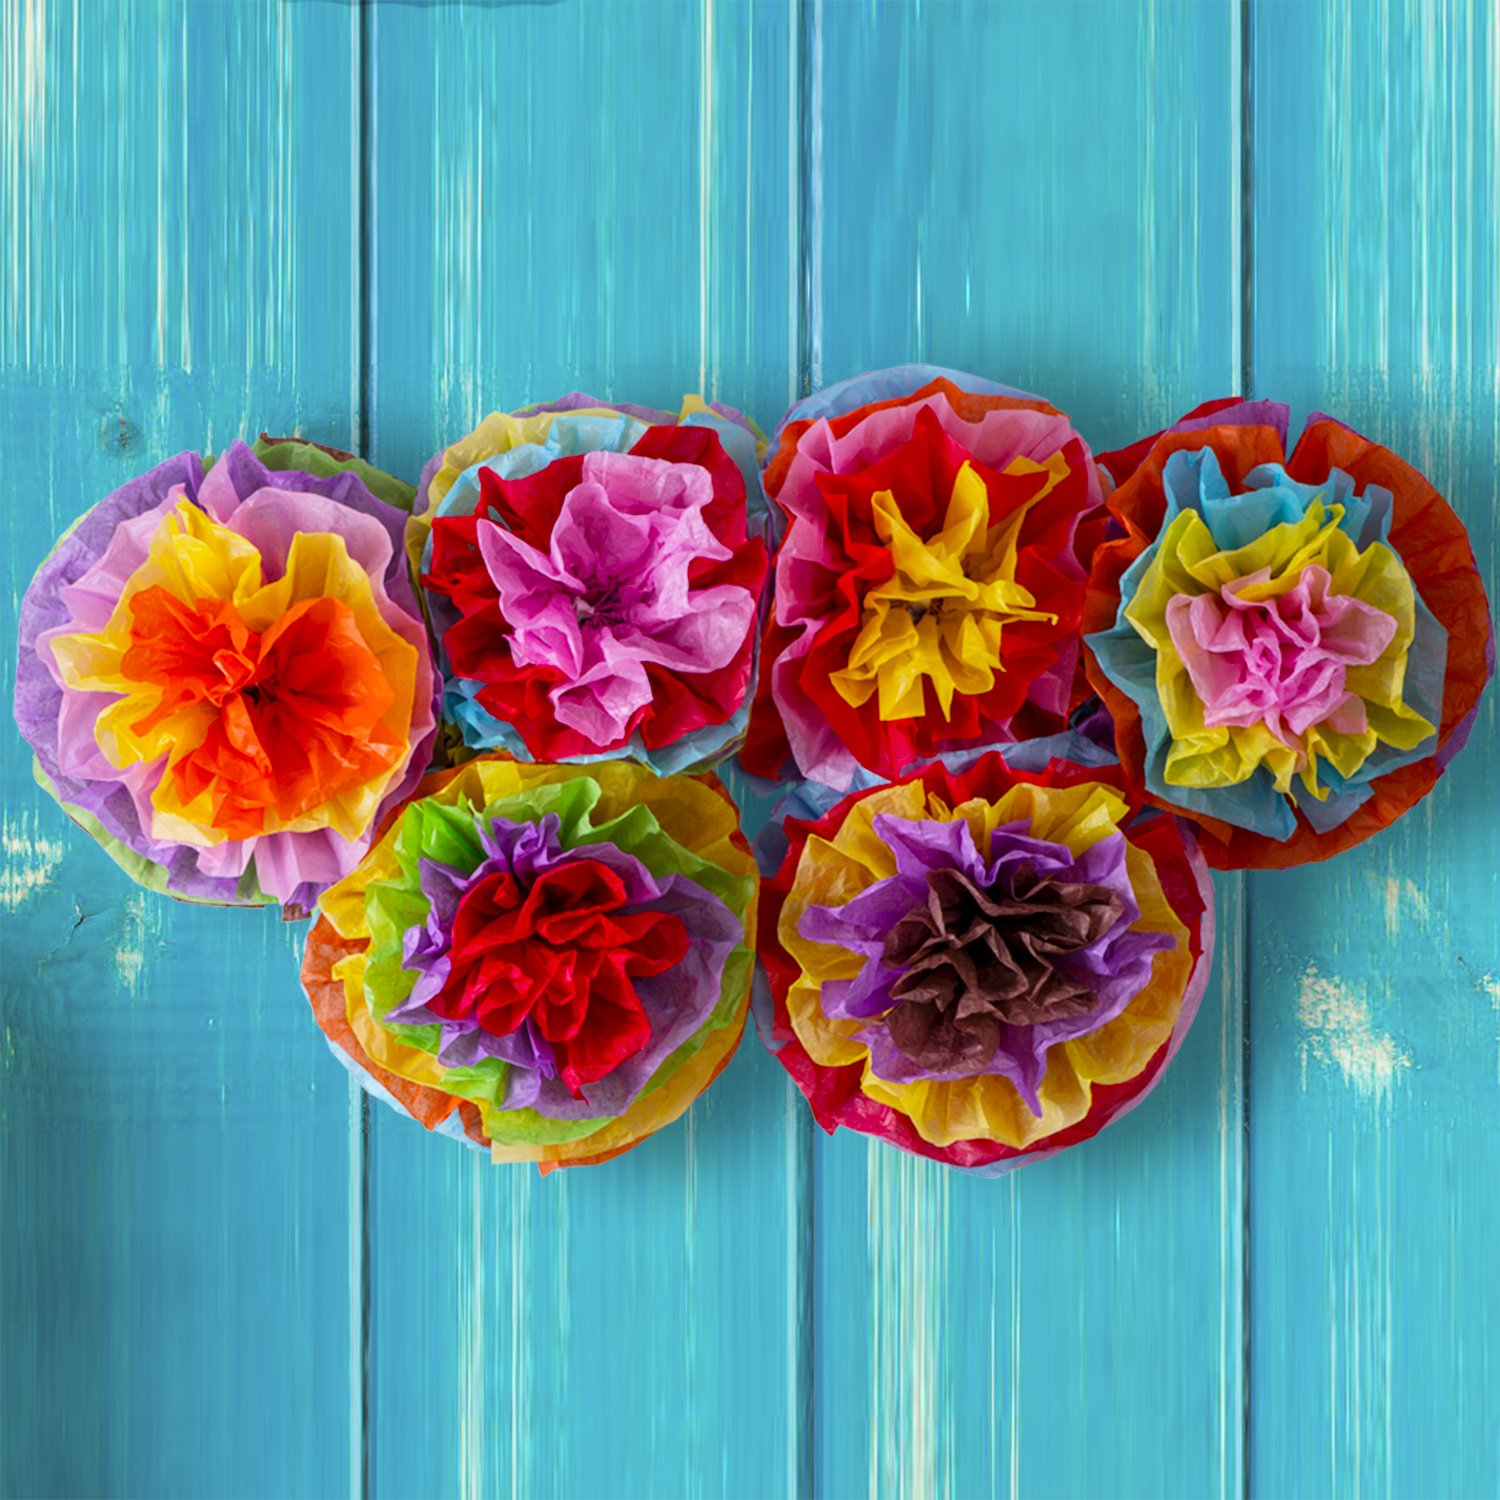 Cinco De Mayo Decorations Fiesta Tissue Pom Paper Flowers - Mexican Party Supplies 16'' (Set of 6) by Moon Boat